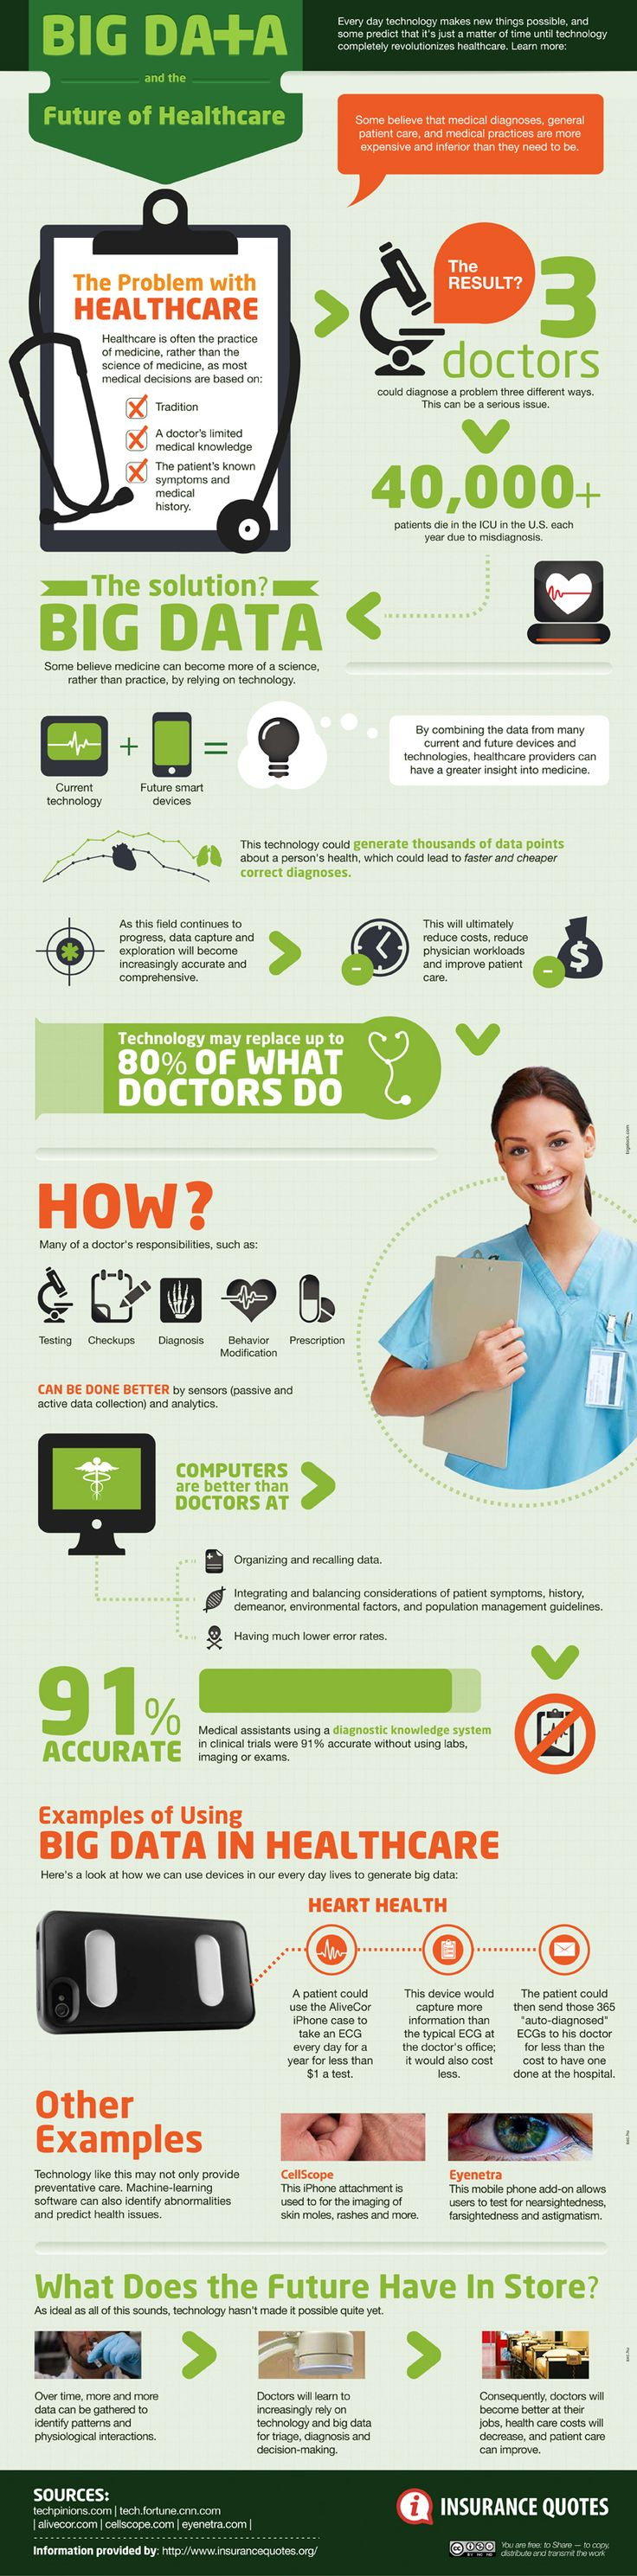 Afbeelding van http://s3.amazonaws.com/infographics/Big-Data-Future-Of-Healthcare-800.jpg.